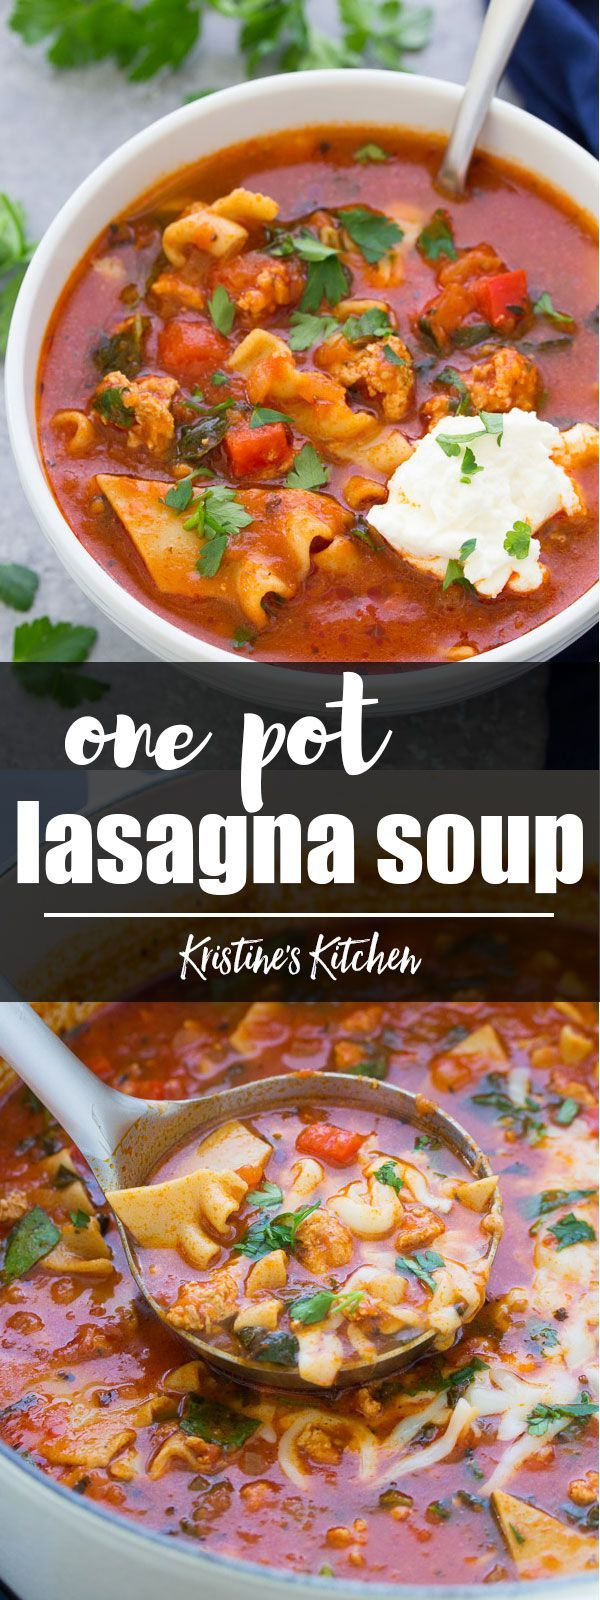 This healthier one pot lasagna soup is made with ground turkey and whole wheat pasta noodles. This soup is full of healthy vegetables. It's a quick and easy family friendly dinner recipe! #onepot #lasagna #pasta #soup #turkey #healthyeating #dinner